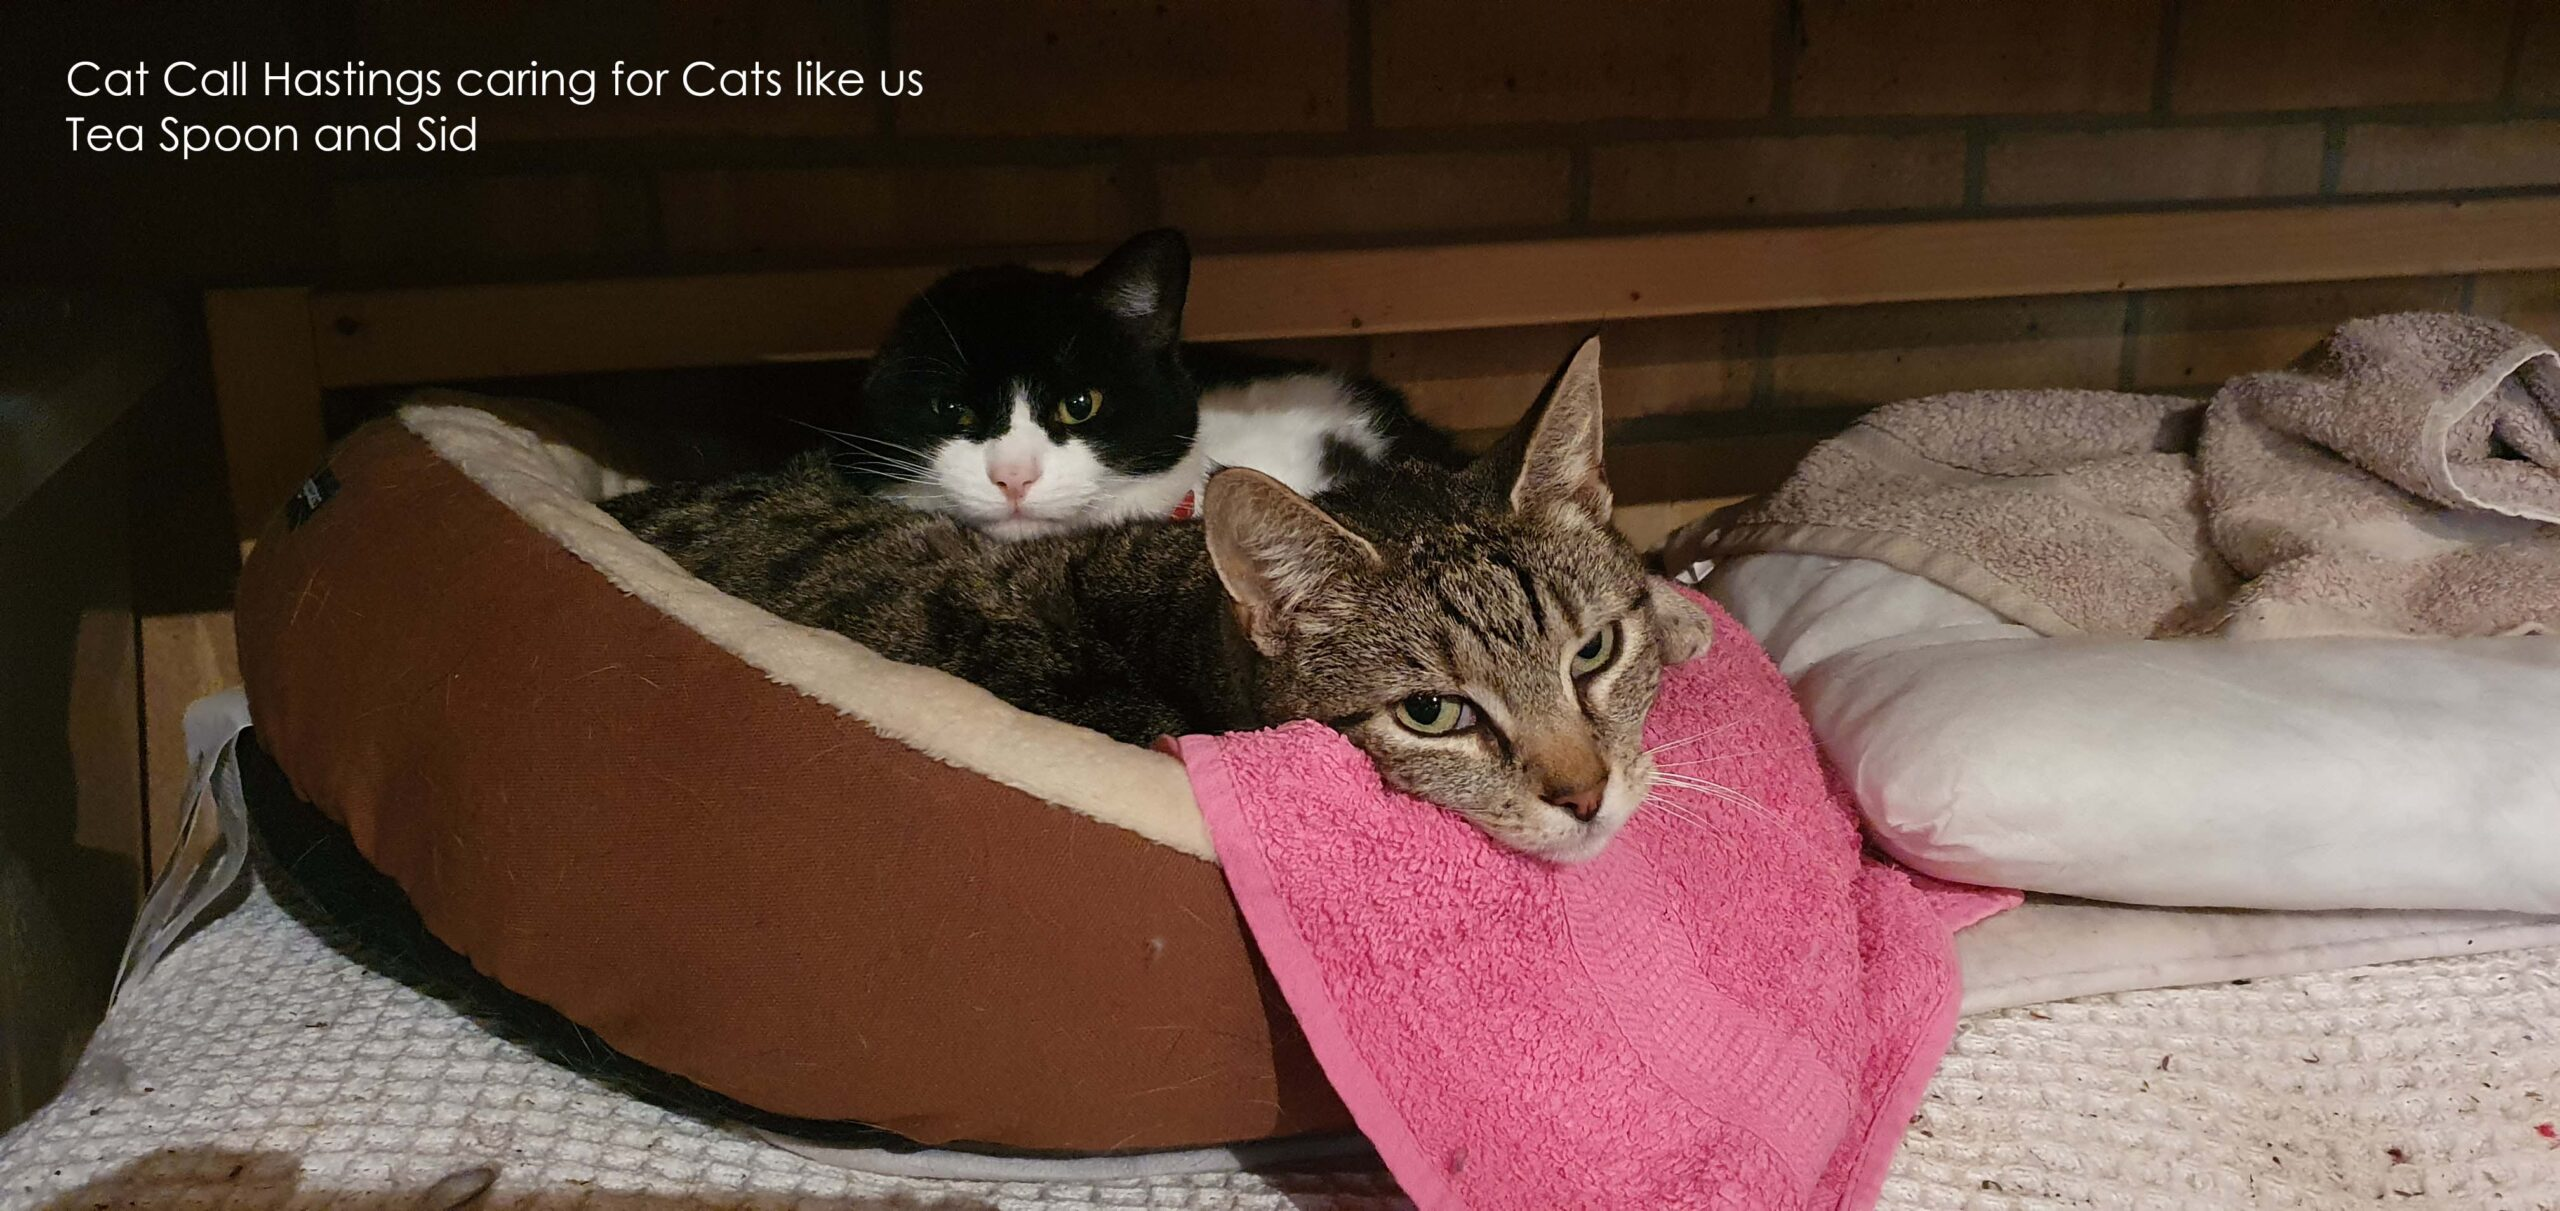 Cat Call Charity caring for Cats in Hastings since 1983